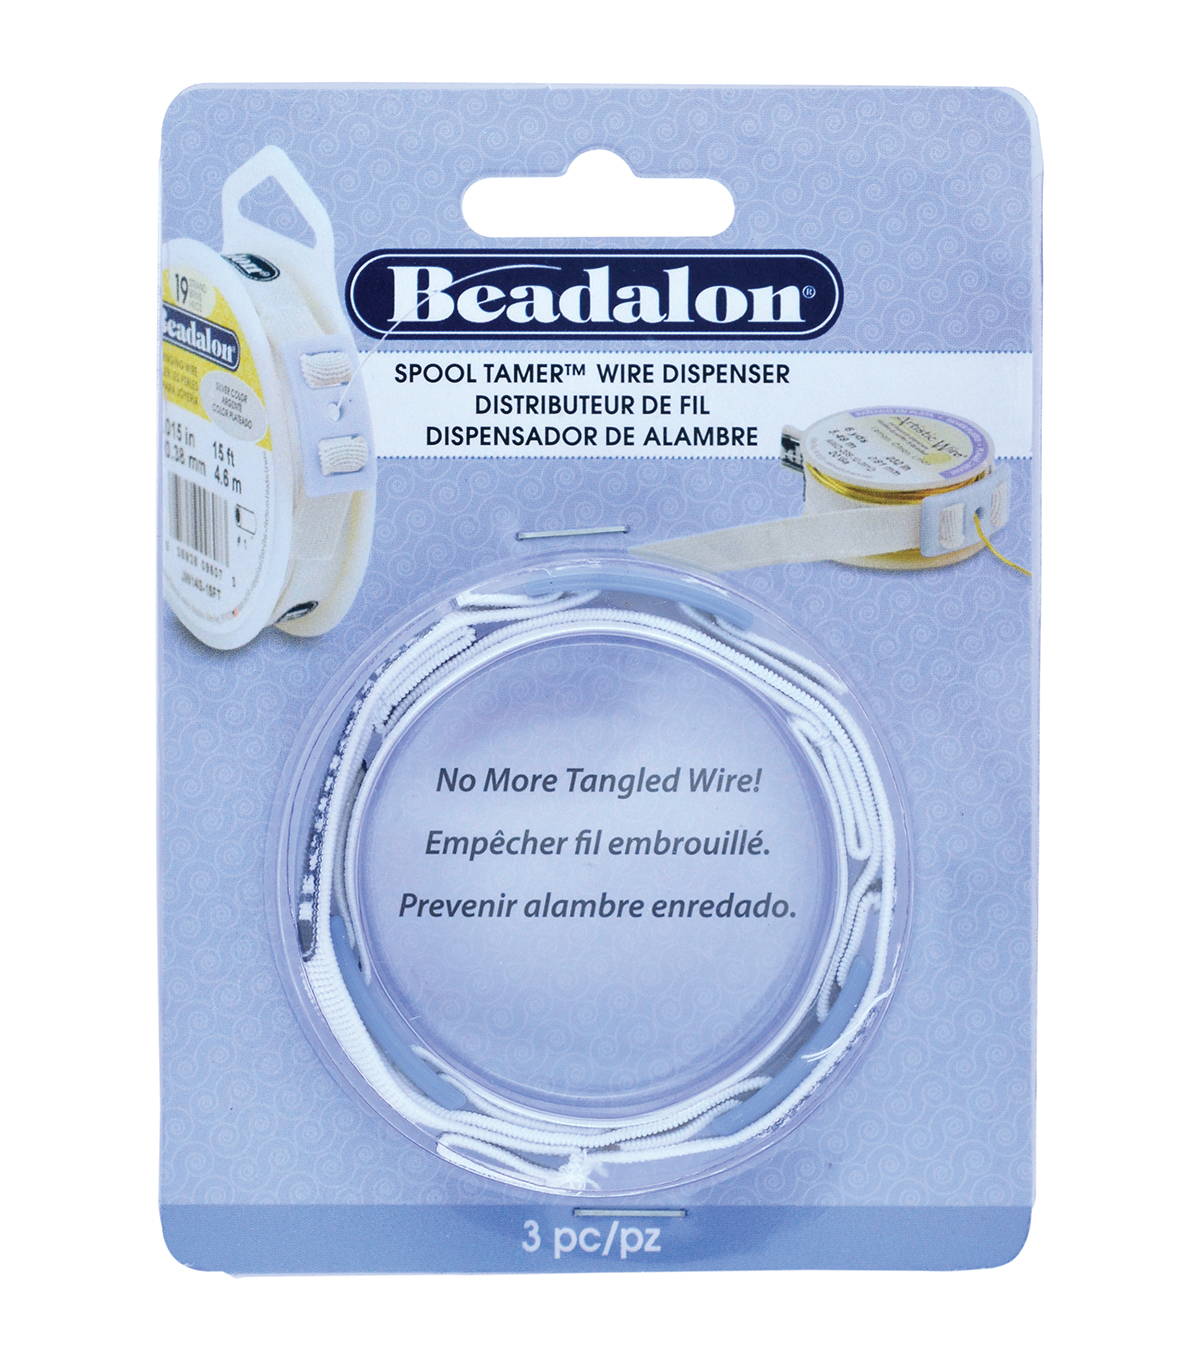 Beadalon Spool Tamer (TM) Wire Dispenser 3pc